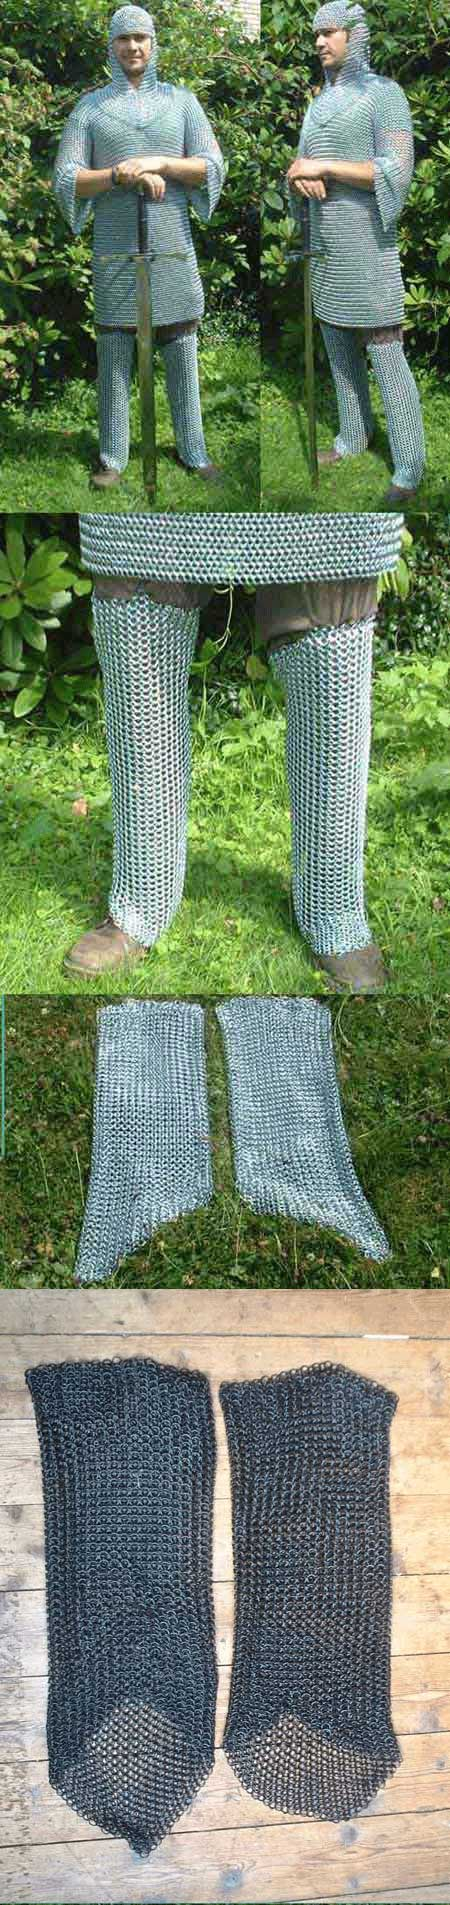 Chain mail leg protection